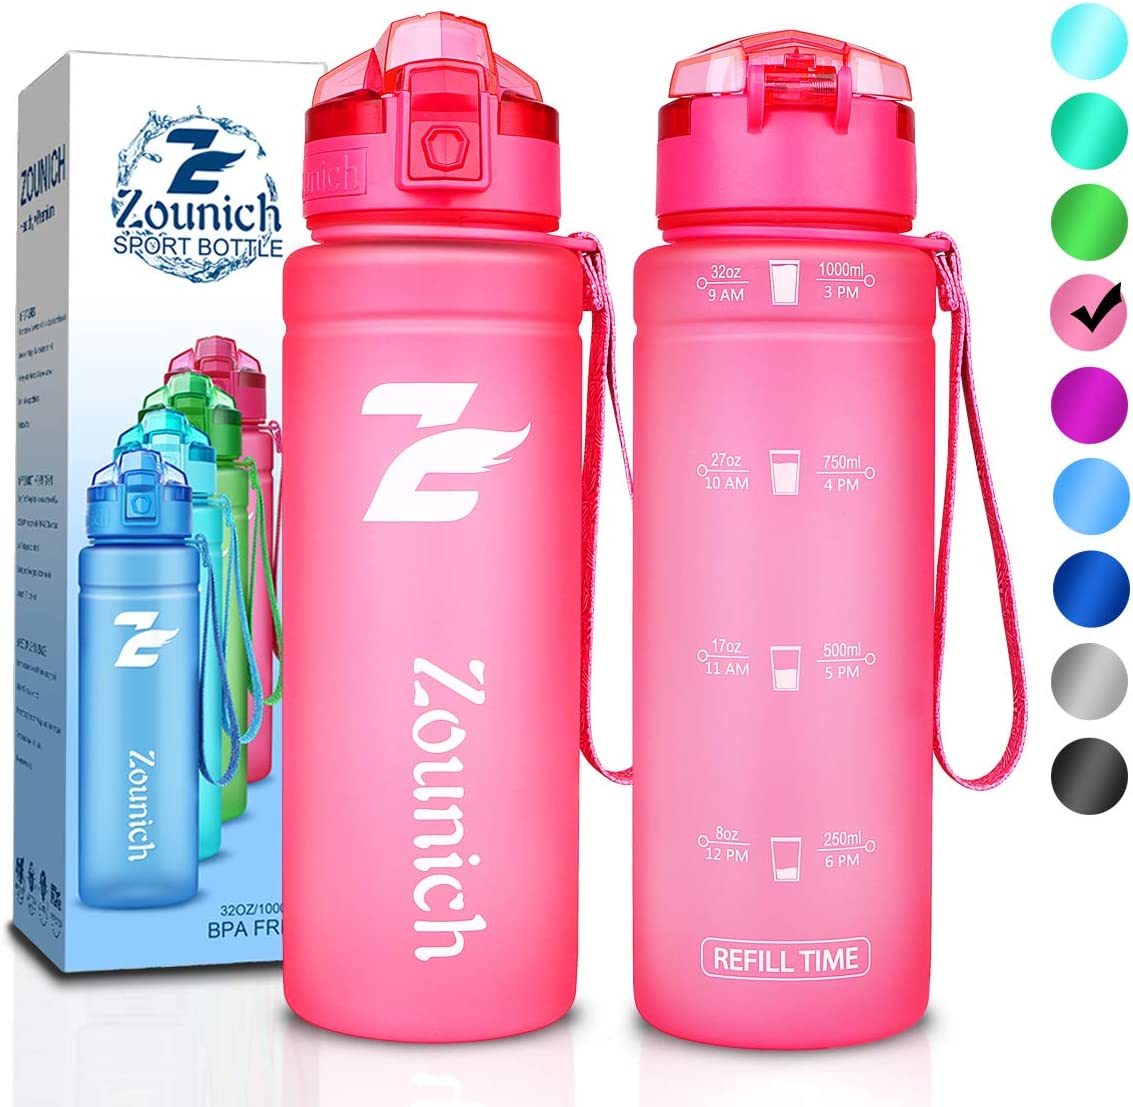 ZOUNICH Premium Motivational Water Bottle with Time Marker - 40 oz, 32 oz/1 Liter, 24 oz, 16 oz, Kids Water Bottle Sports Water Bottle BPA Free Leak Proof & Lockable Lid